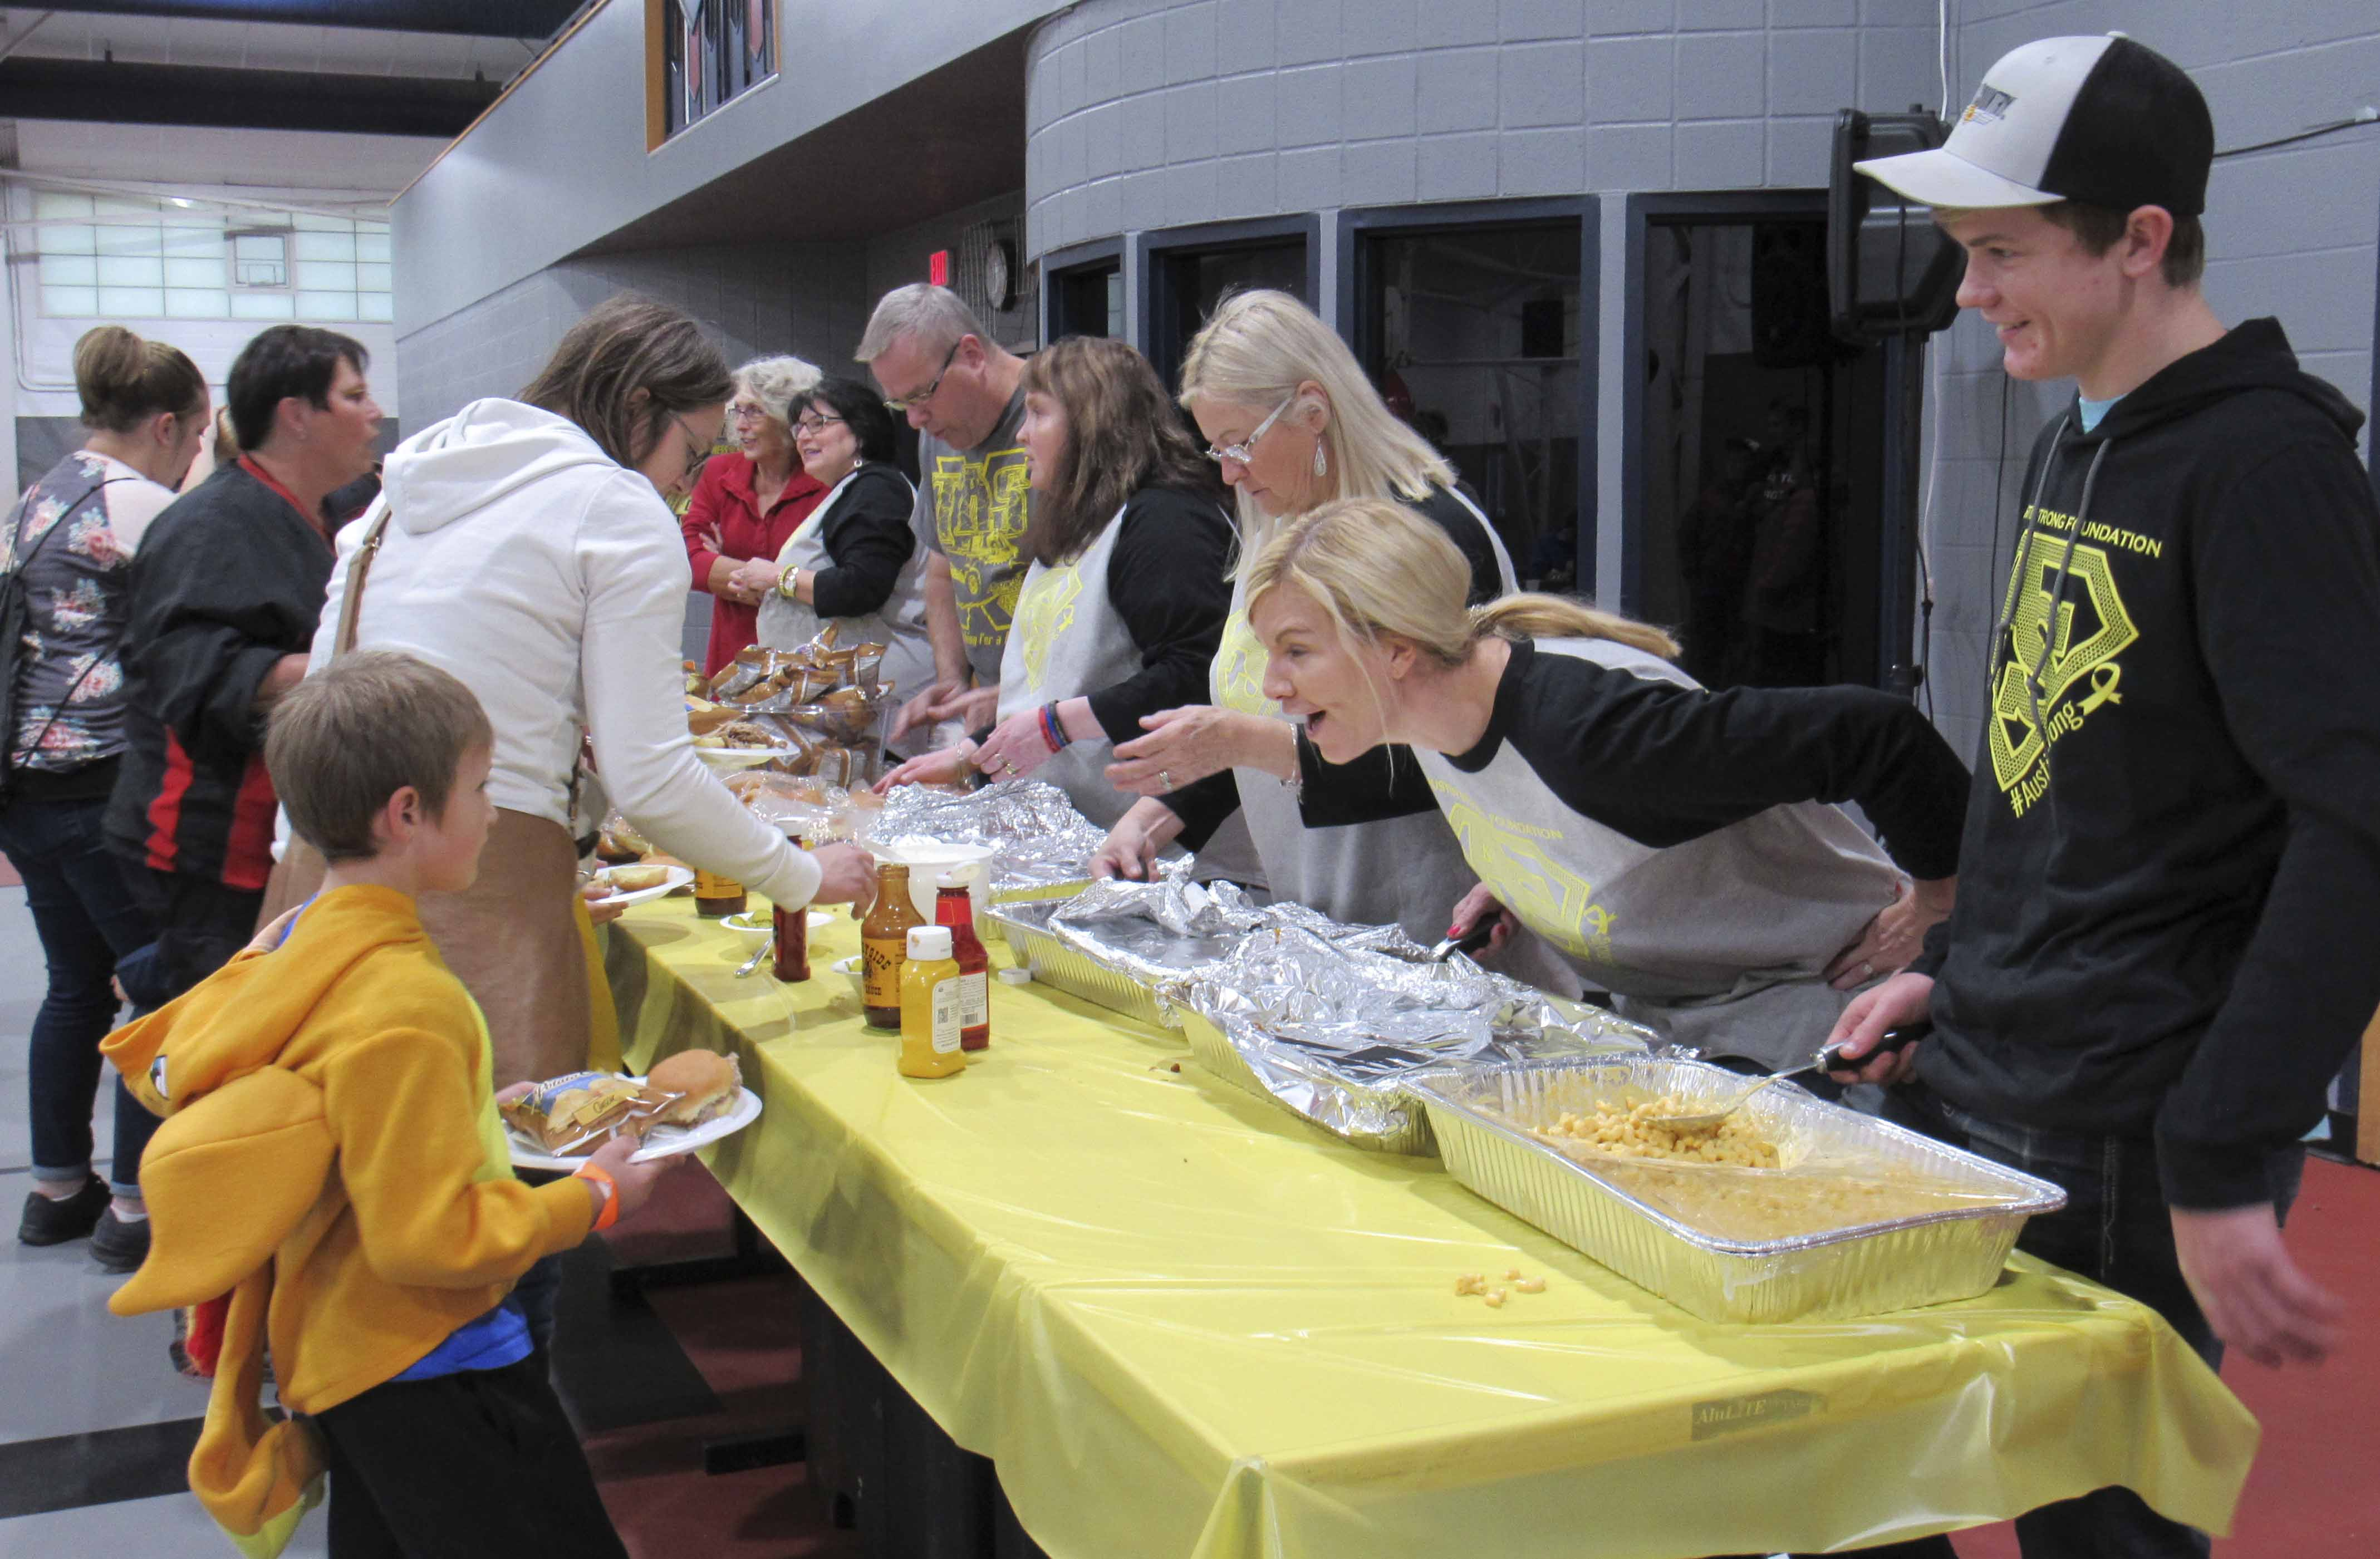 So many volunteers helped to make Austin's Halloween Fun Night a successful event. The meal was provided by Sally's on Broadway in Springville. Sally's served many of Austin Smith's favorite menu items.